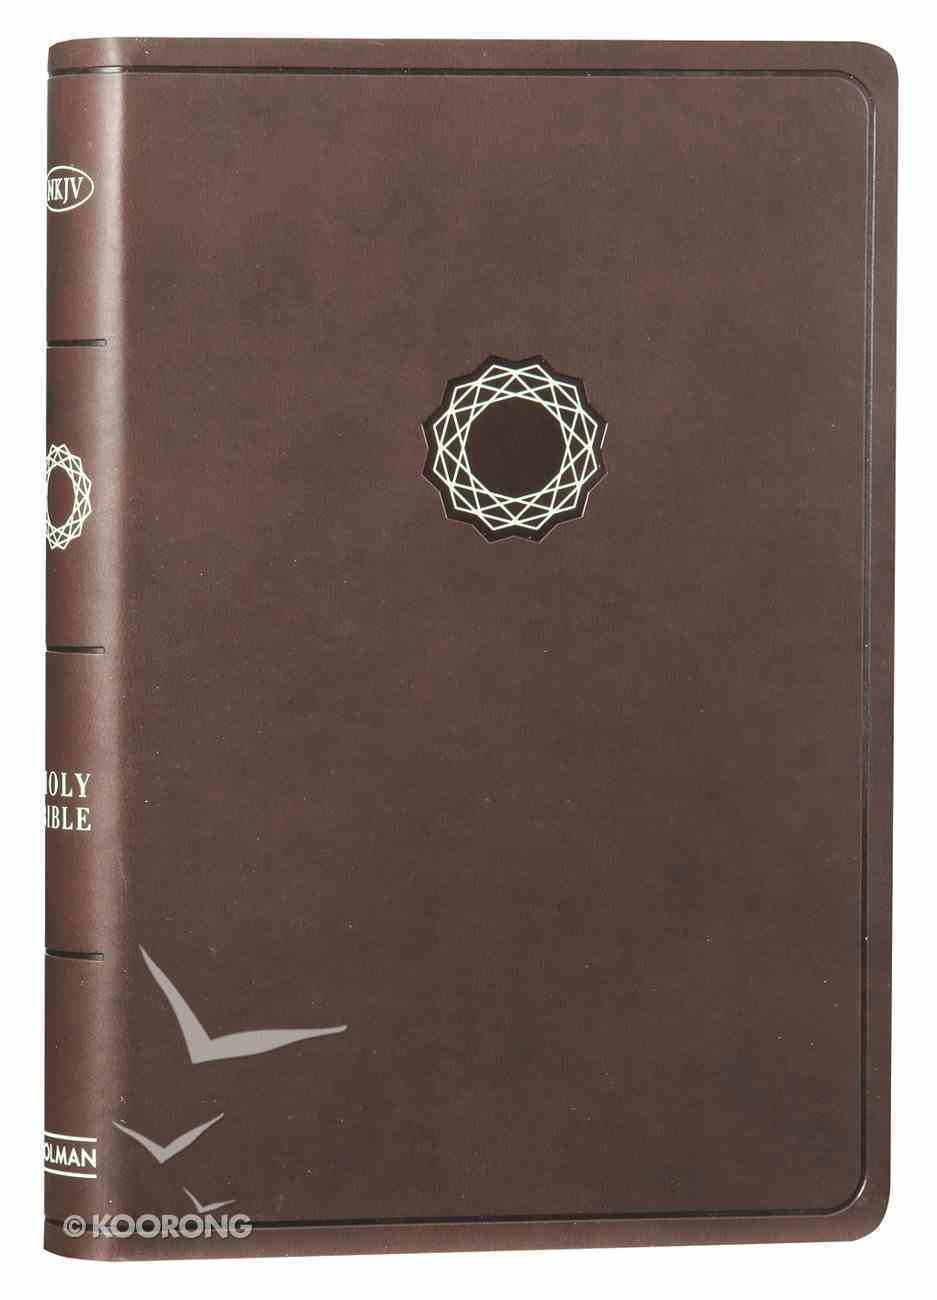 NKJV Deluxe Gift Bible Brown Imitation Leather